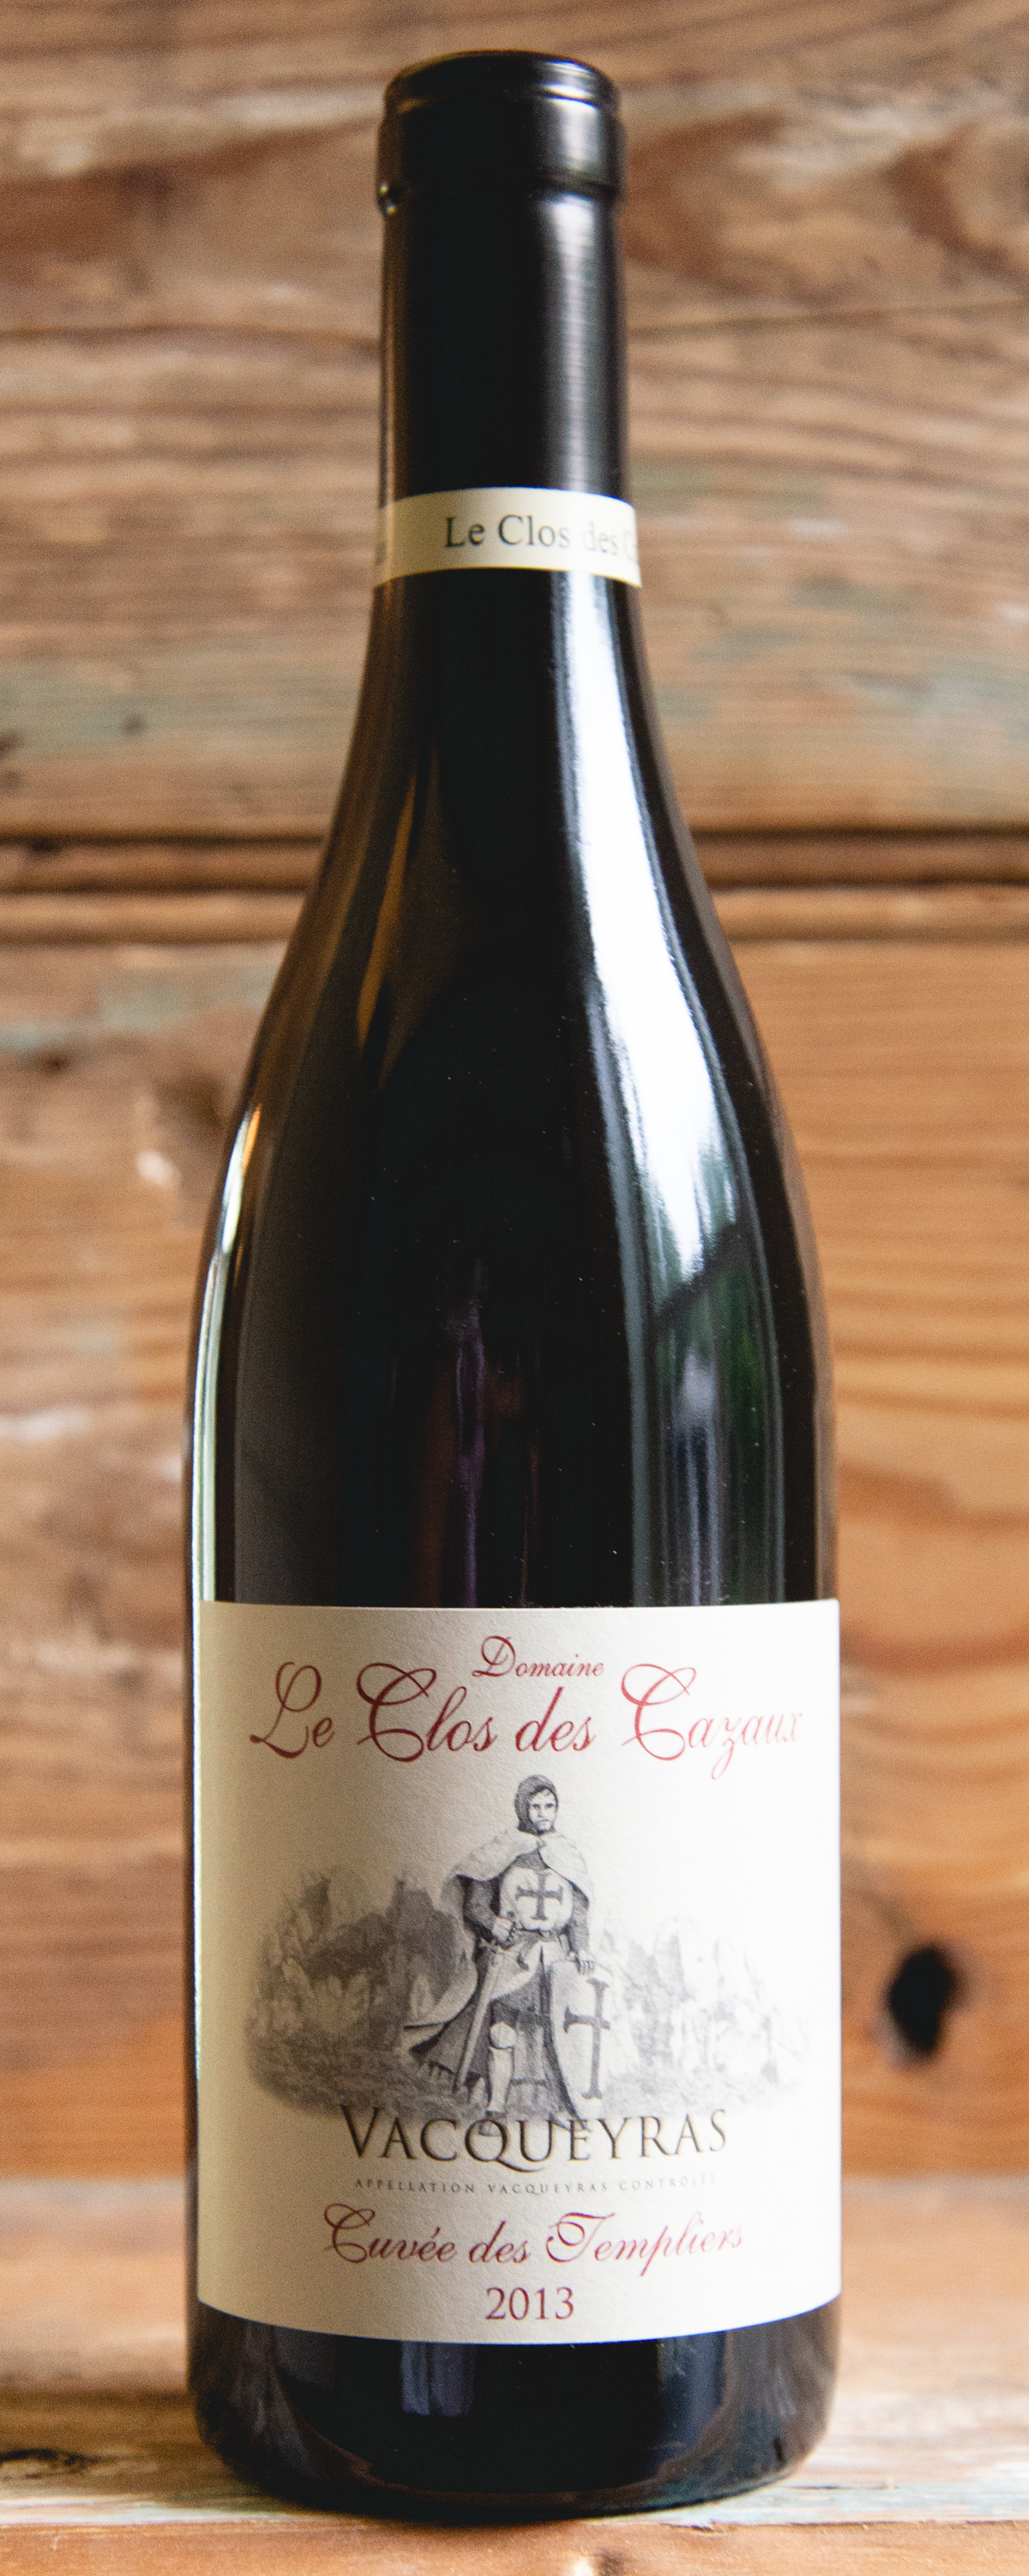 """Le Clos des Cazaux """"Cuvée des Templiers"""" Vacqueyras 2013 - Origin: FranceRetail: $25.95   Sale $23.35The Archimbaud-Vache family - owners of Clos des Cazaux - is one of the oldest families in Vacqueyras, with roots dating back to 1791.From vines planted in 1934, this is an atypically spicy blend with peppery, blackberry fruit, and garrigue notes. Deeply pitched black and blue fruit are enlivened by smokey mineral and peppery spice accents. The balanced and lasting tannins of this wine make an excellent accompaniment to grilled meats and vegetables.50% Syrah   50% Grenache"""